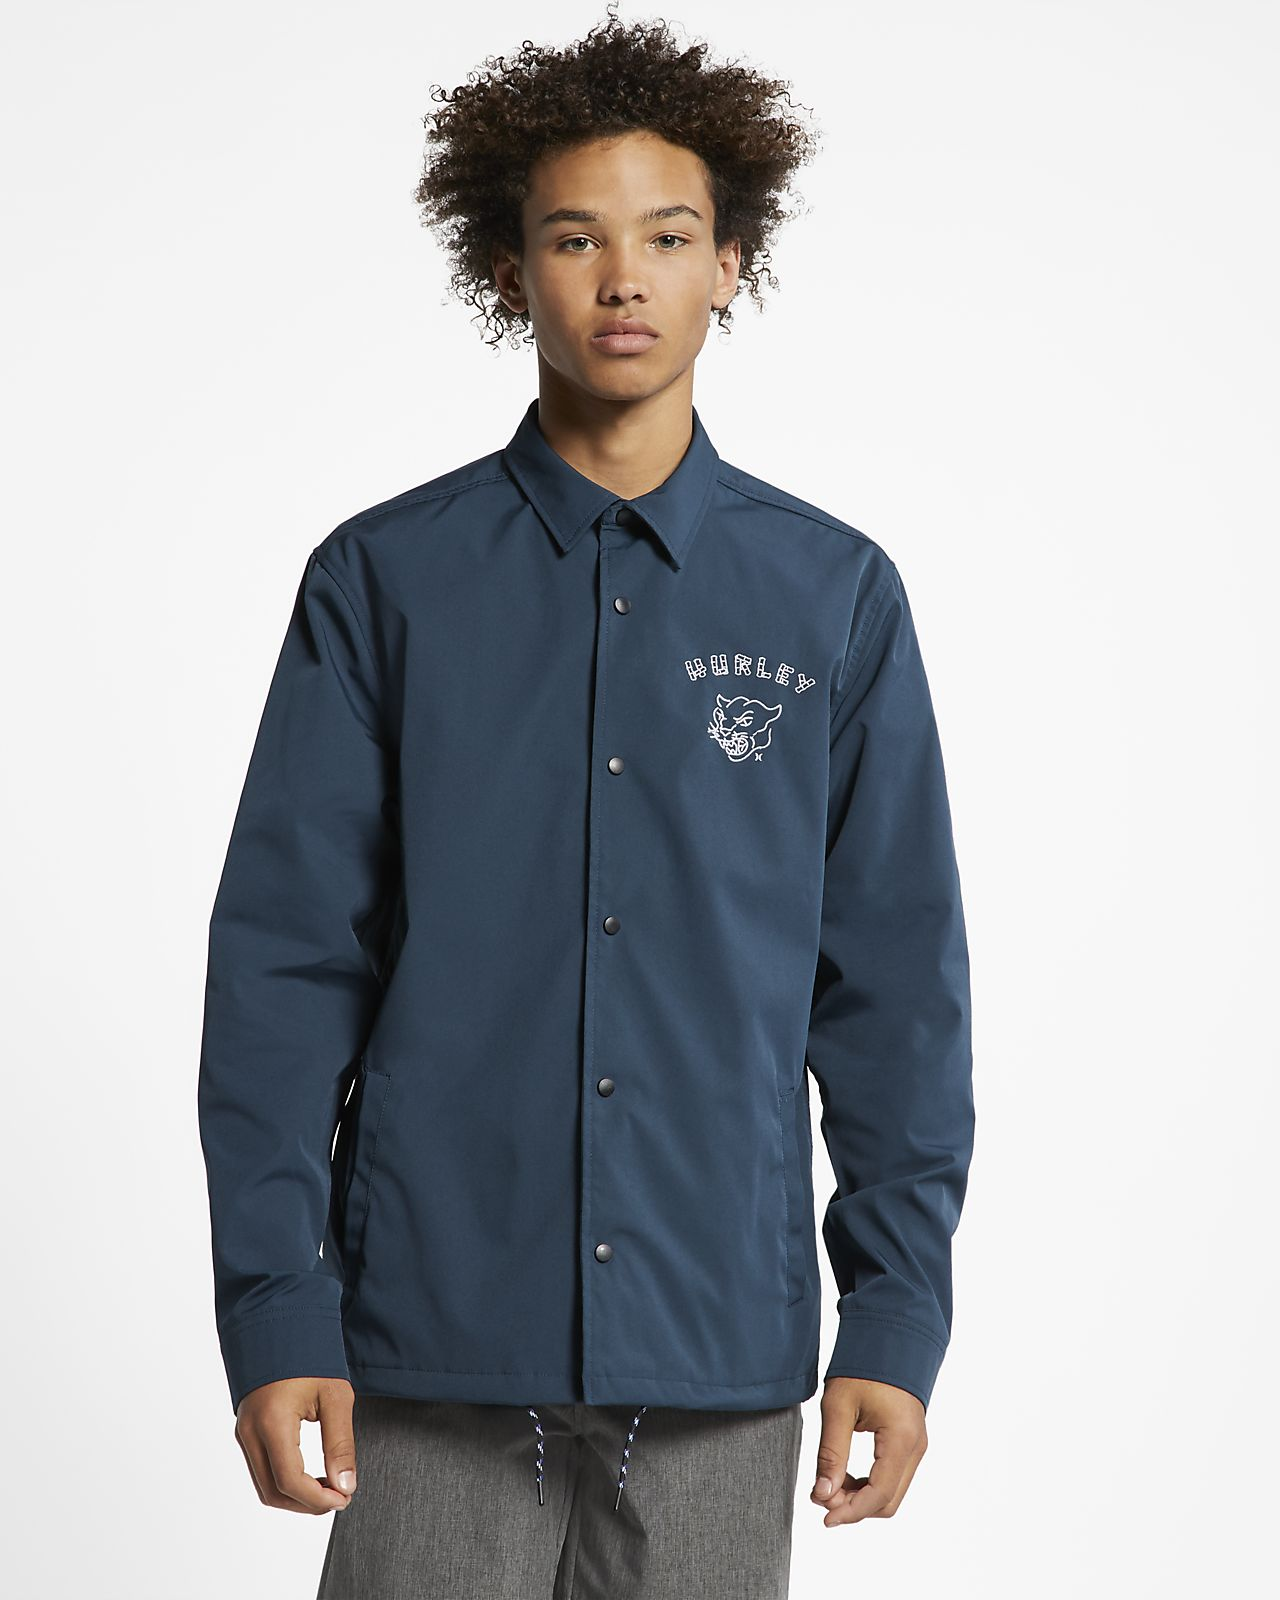 Hurley Coaches Men's Jacket